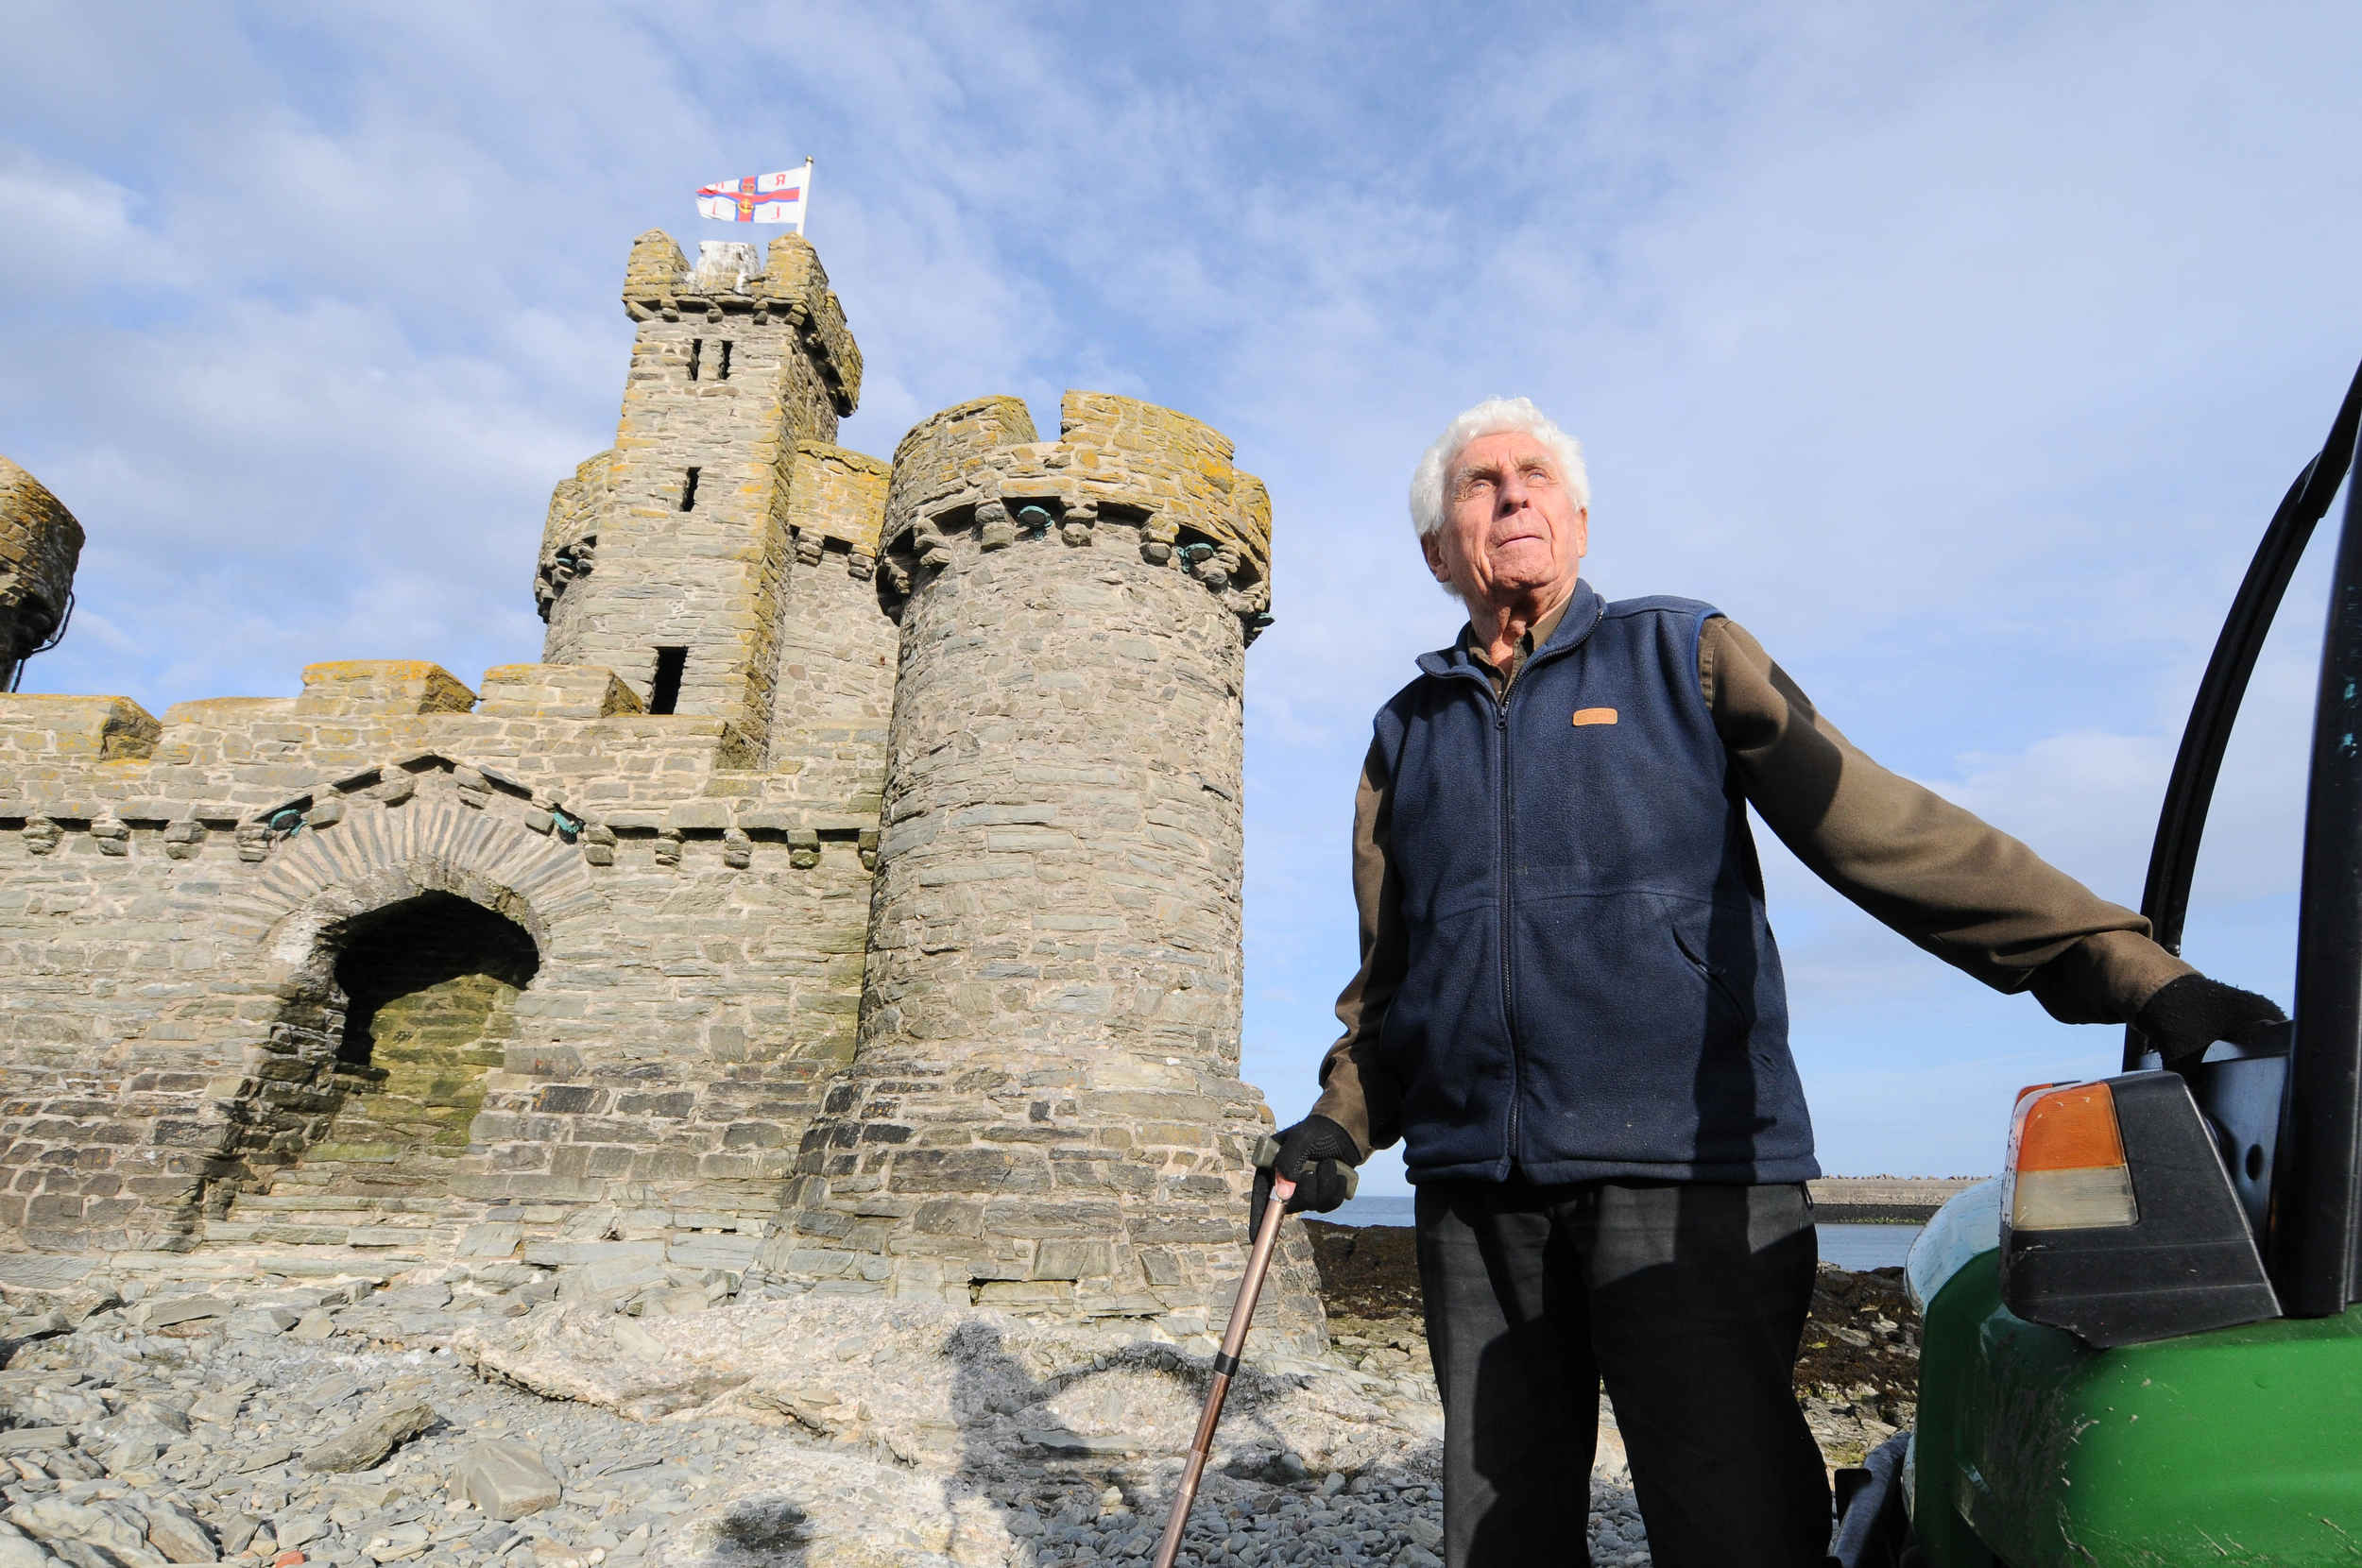 Historian, Journalist and broadcaster Terry Cringle is given a lift to the Tower of Refuge by the Coastguard